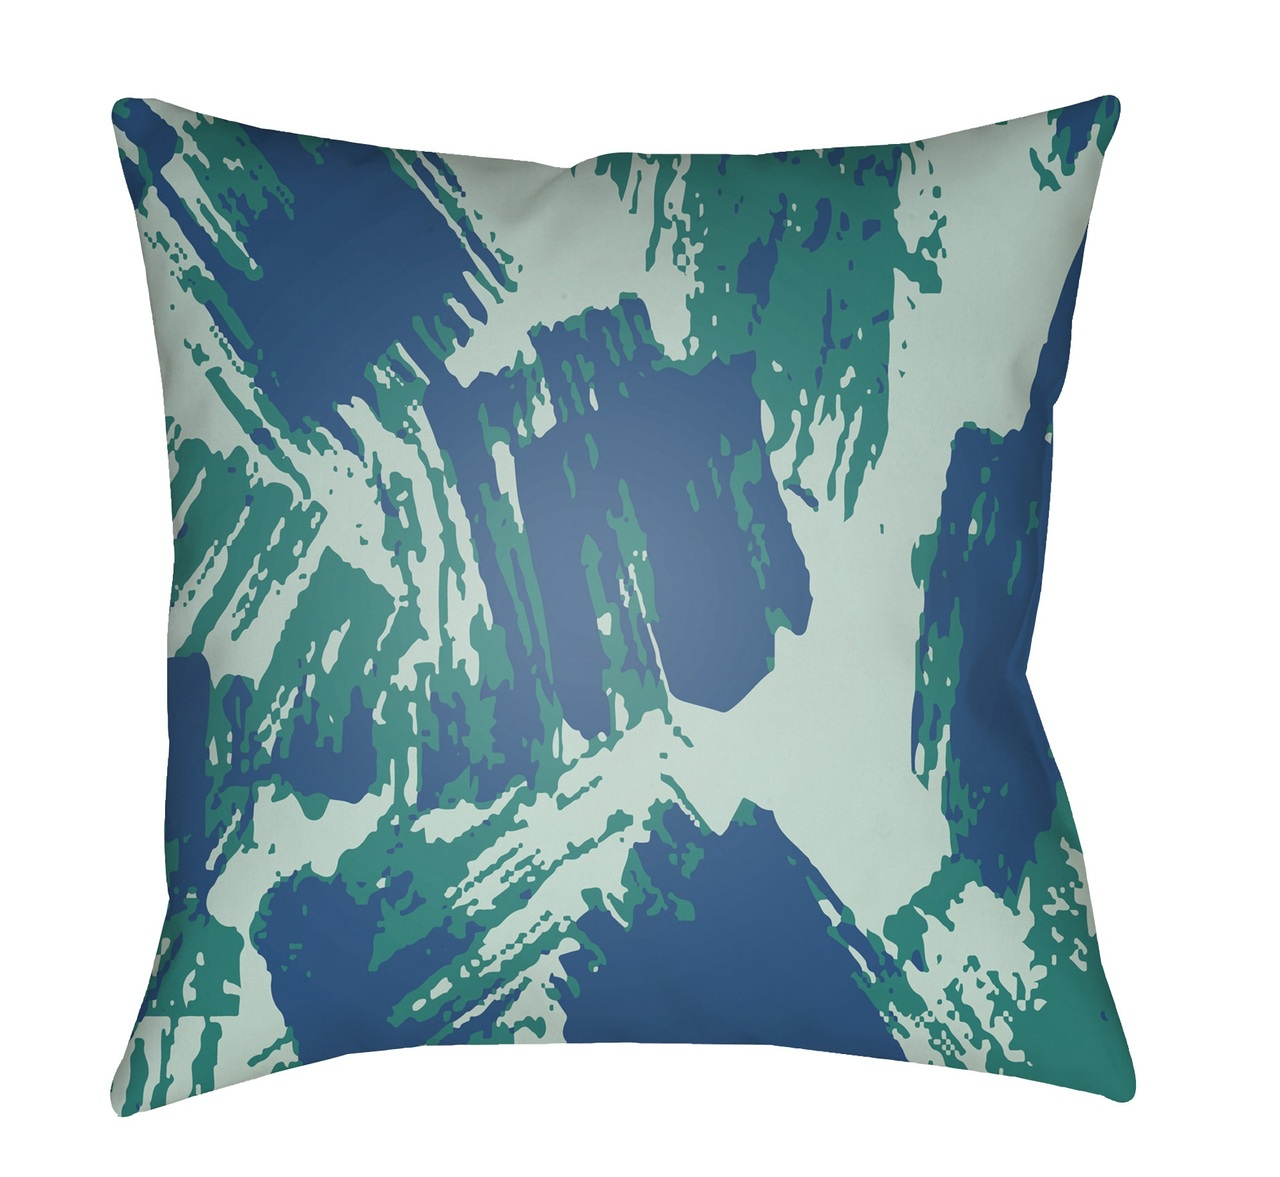 22 Green Navy Blue Abstract Patterned Square Throw Pillow Cover Christmas Central